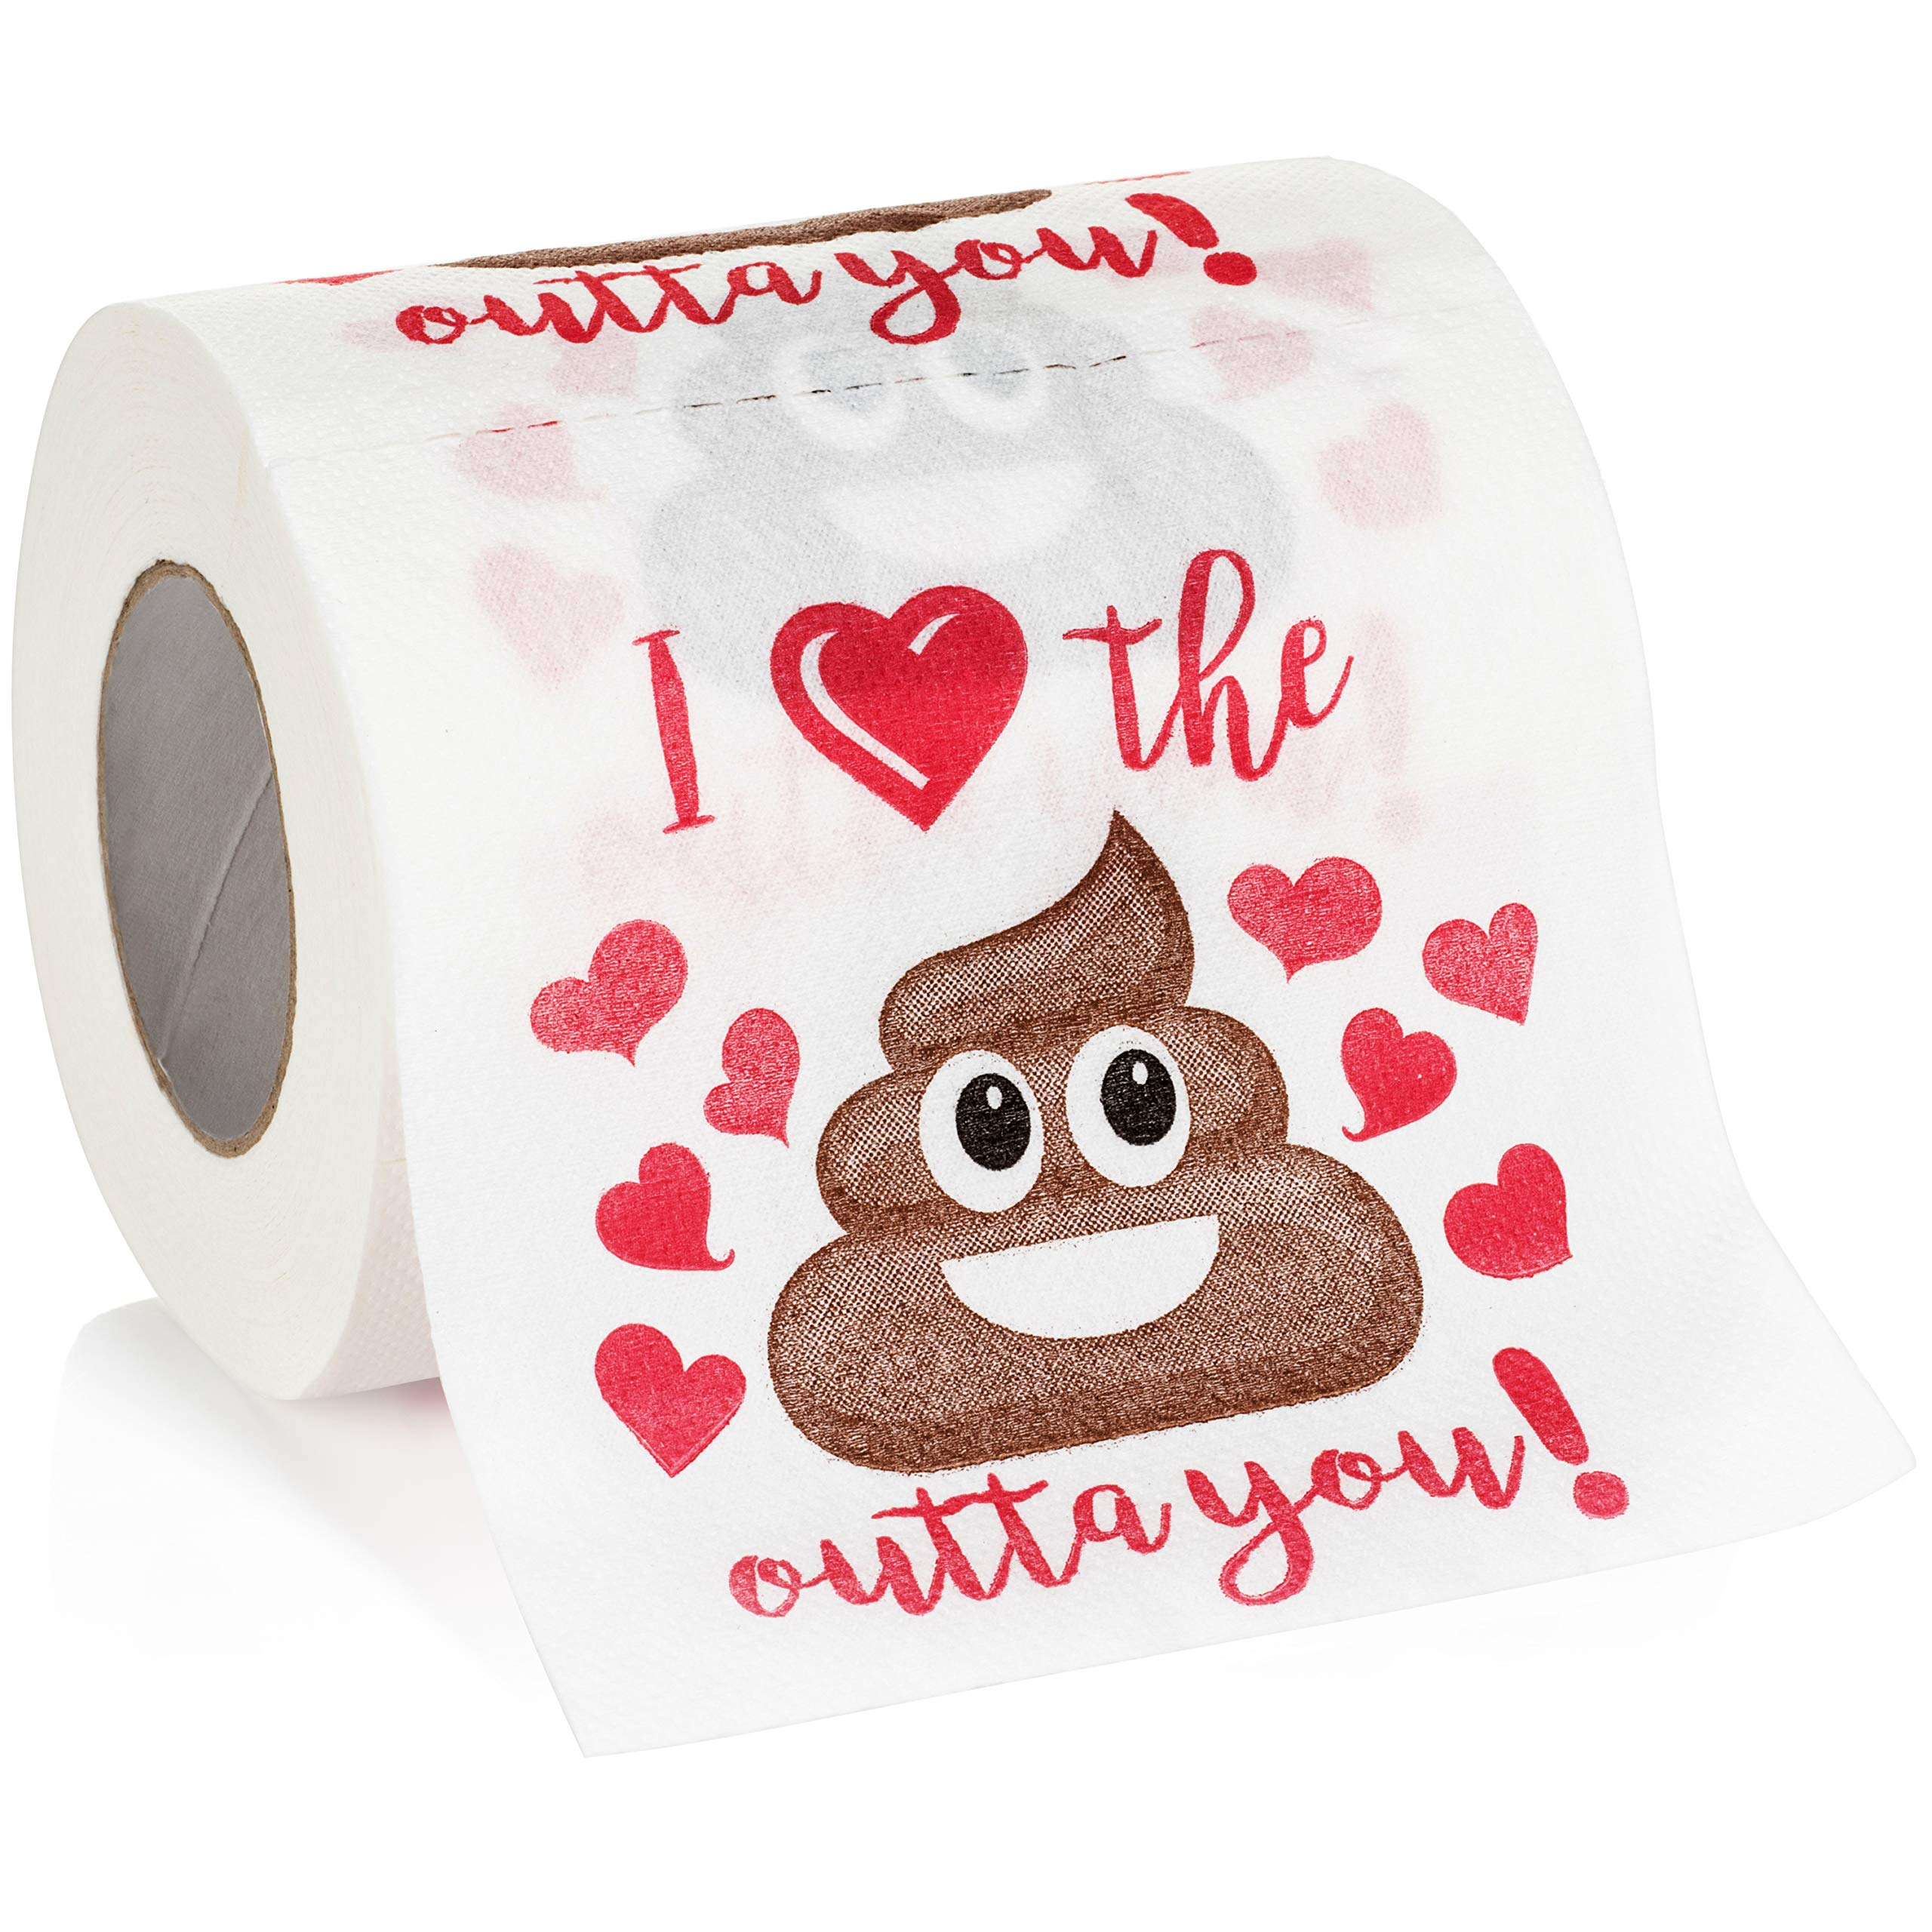 Maad Romantic Novelty Toilet Paper - Funny Gag Gift for Valentine's Day or Anniversary Present by Maad (Image #1)